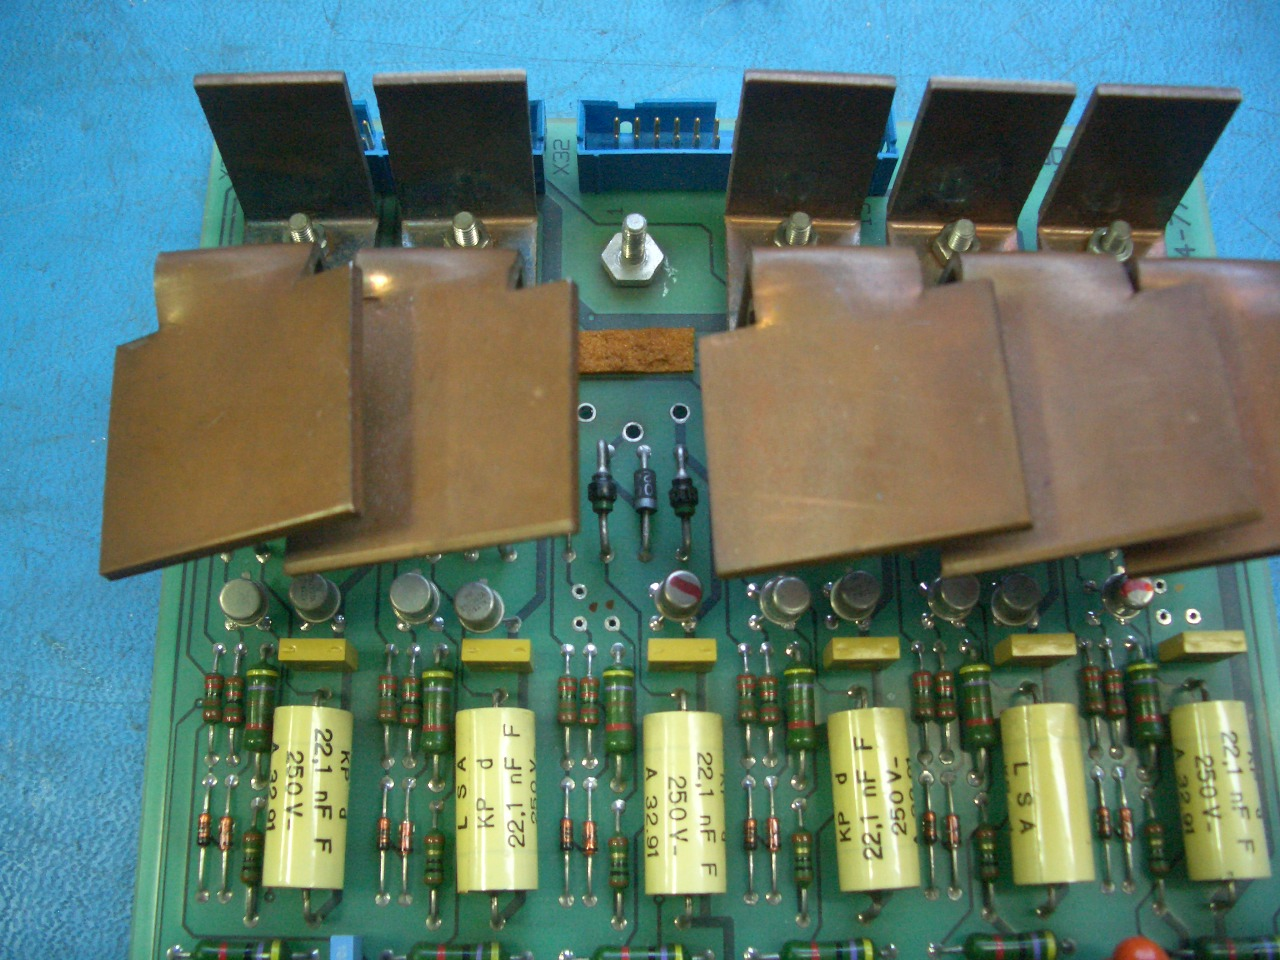 Us Electronics Repairs All Types Of Printed Circuit Boards Pc What Is Electronic We Have Rebuilt Just About Every Kind Board Imaginable For Any Application That There When Oems Drop Support Their Products